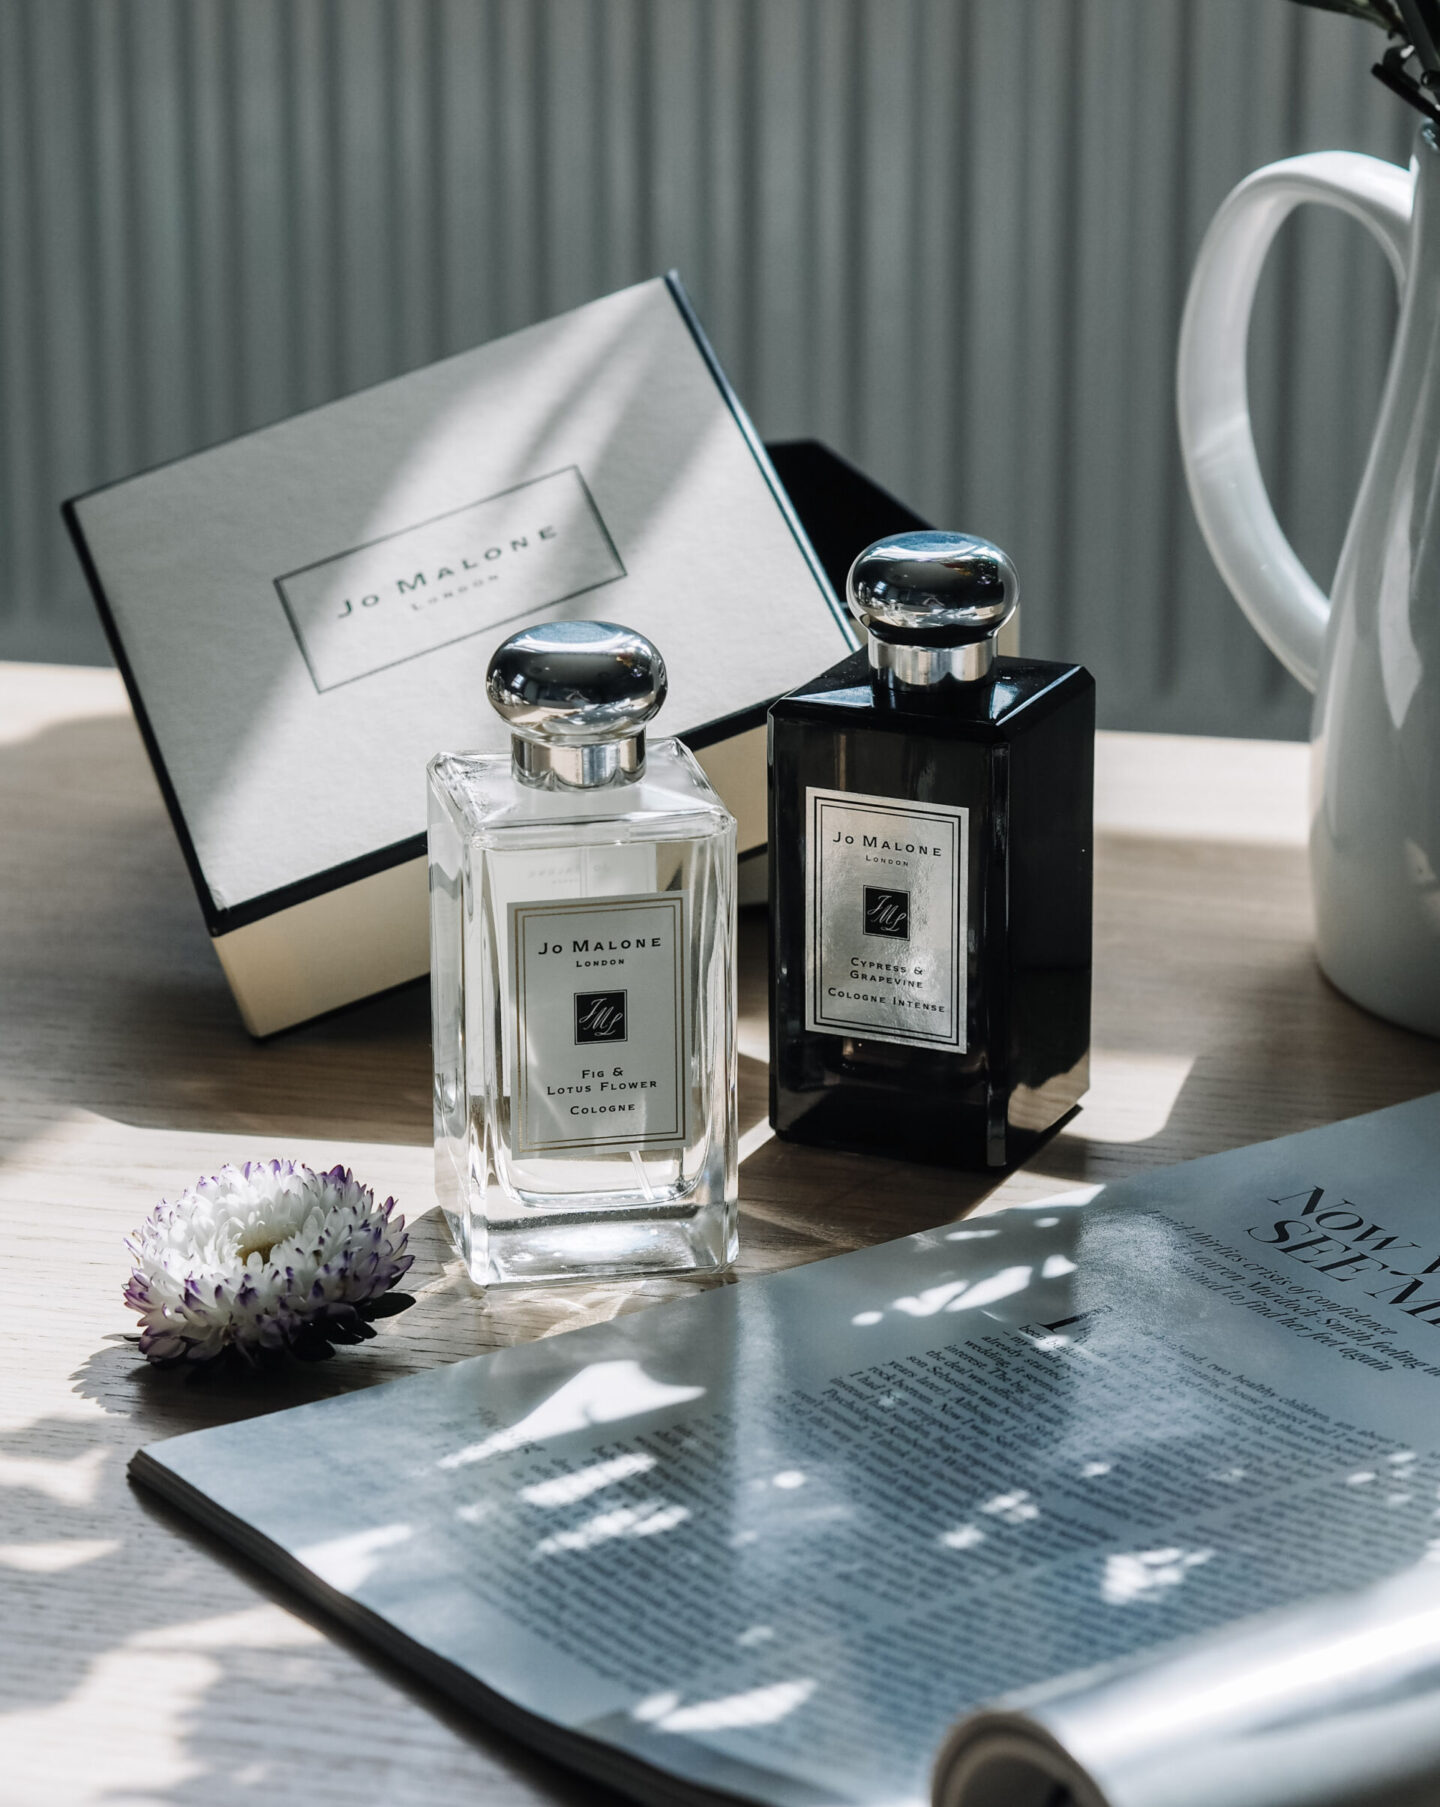 Jo Malone Fig & Lotus Flower and Cypress & Grapevine Review